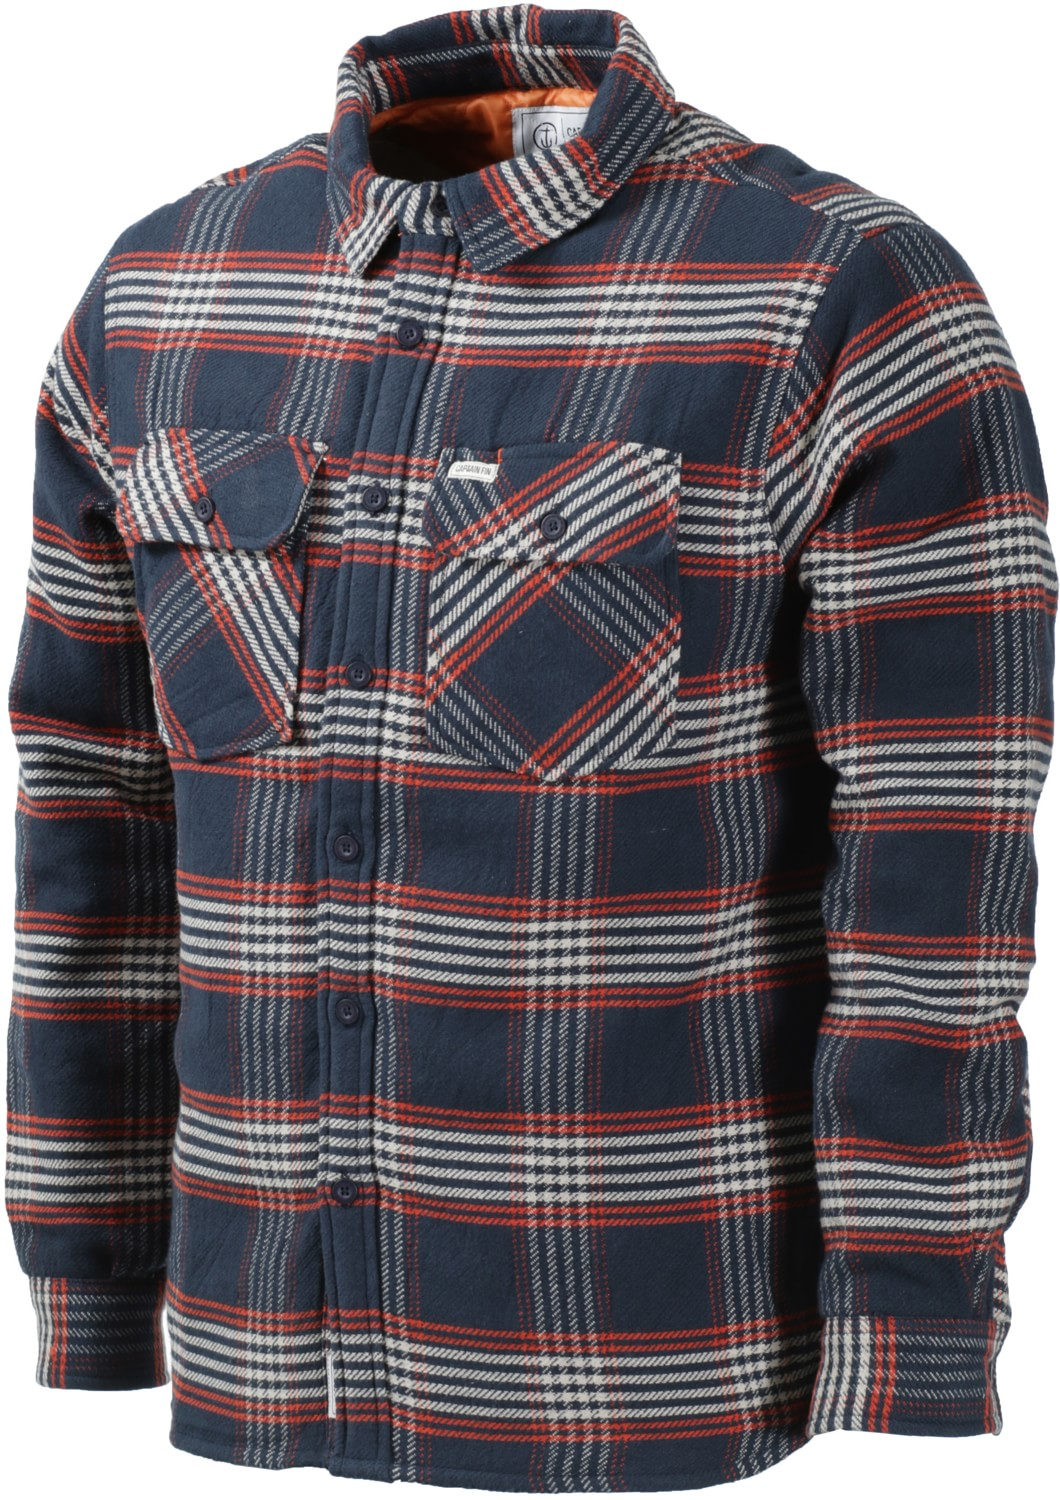 Quilted Flannel Shirt | Quilted Flannel Shirt | Quilted Shirt Mens